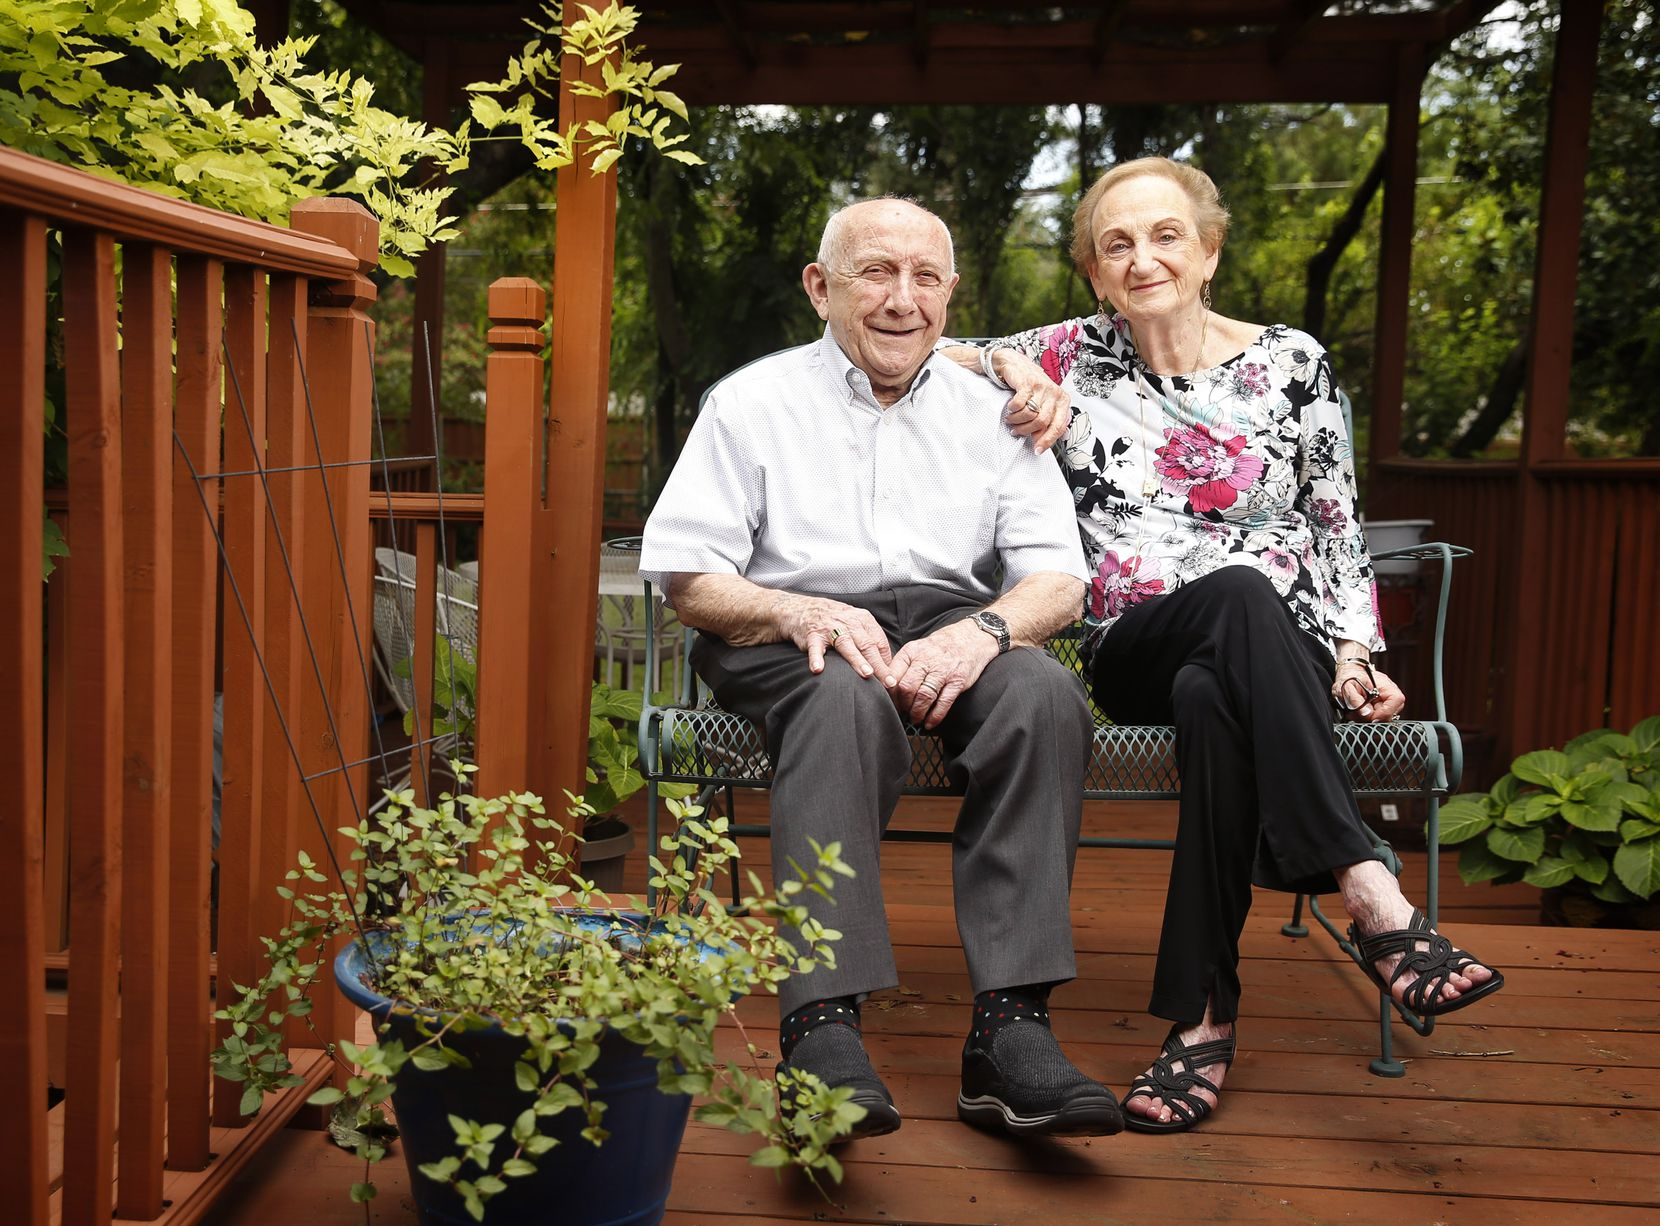 Holocaust survivor Max Glauben and his wife Frieda are photographed outside their Dallas home, Tuesday, August 4, 2020.